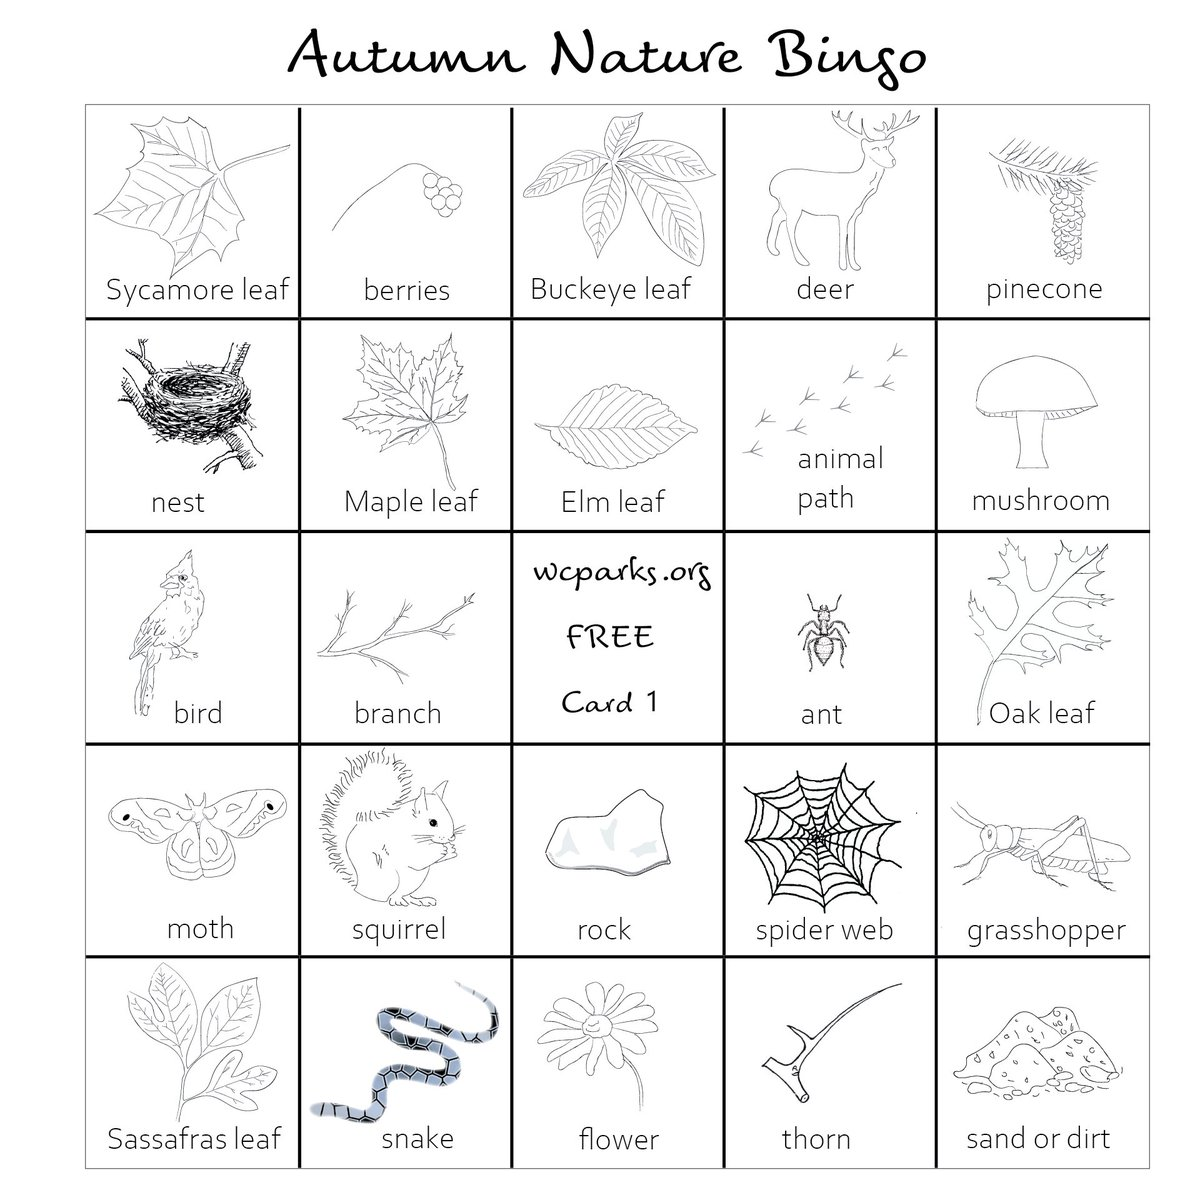 Autumn Nature Bingo #fallvibes #autumnvibes #Autumn2020 #outdoorlearning   Find more adventures at: